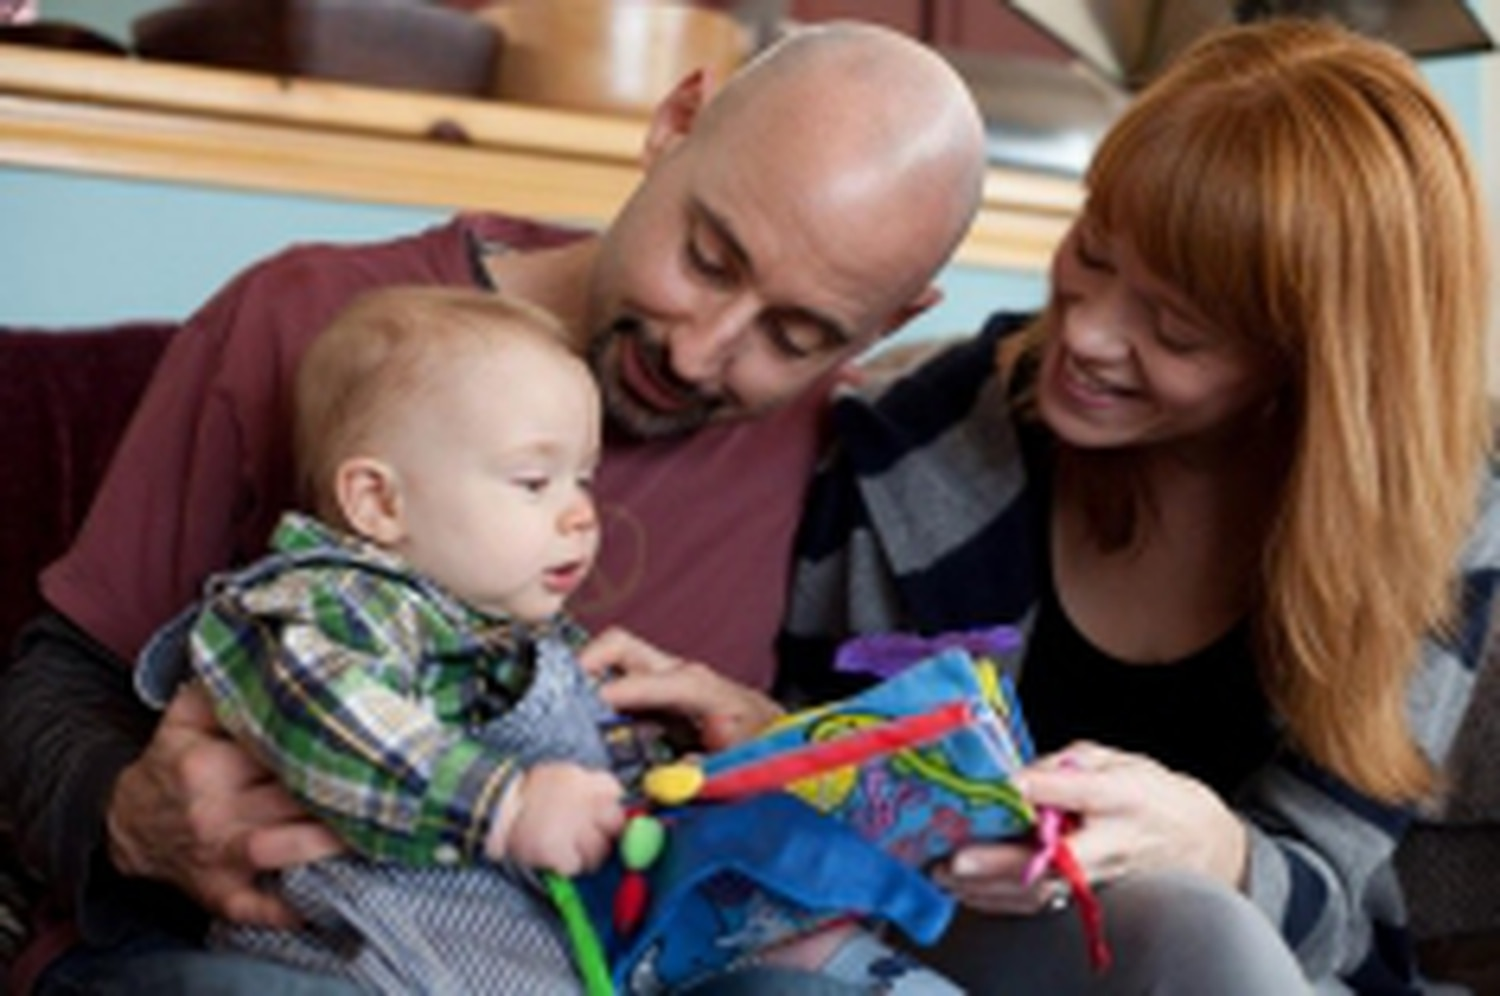 Though their time with their son is limited, Emily and Rick try to enjoy each moment with Ronan.Credits: Tony O'Brien